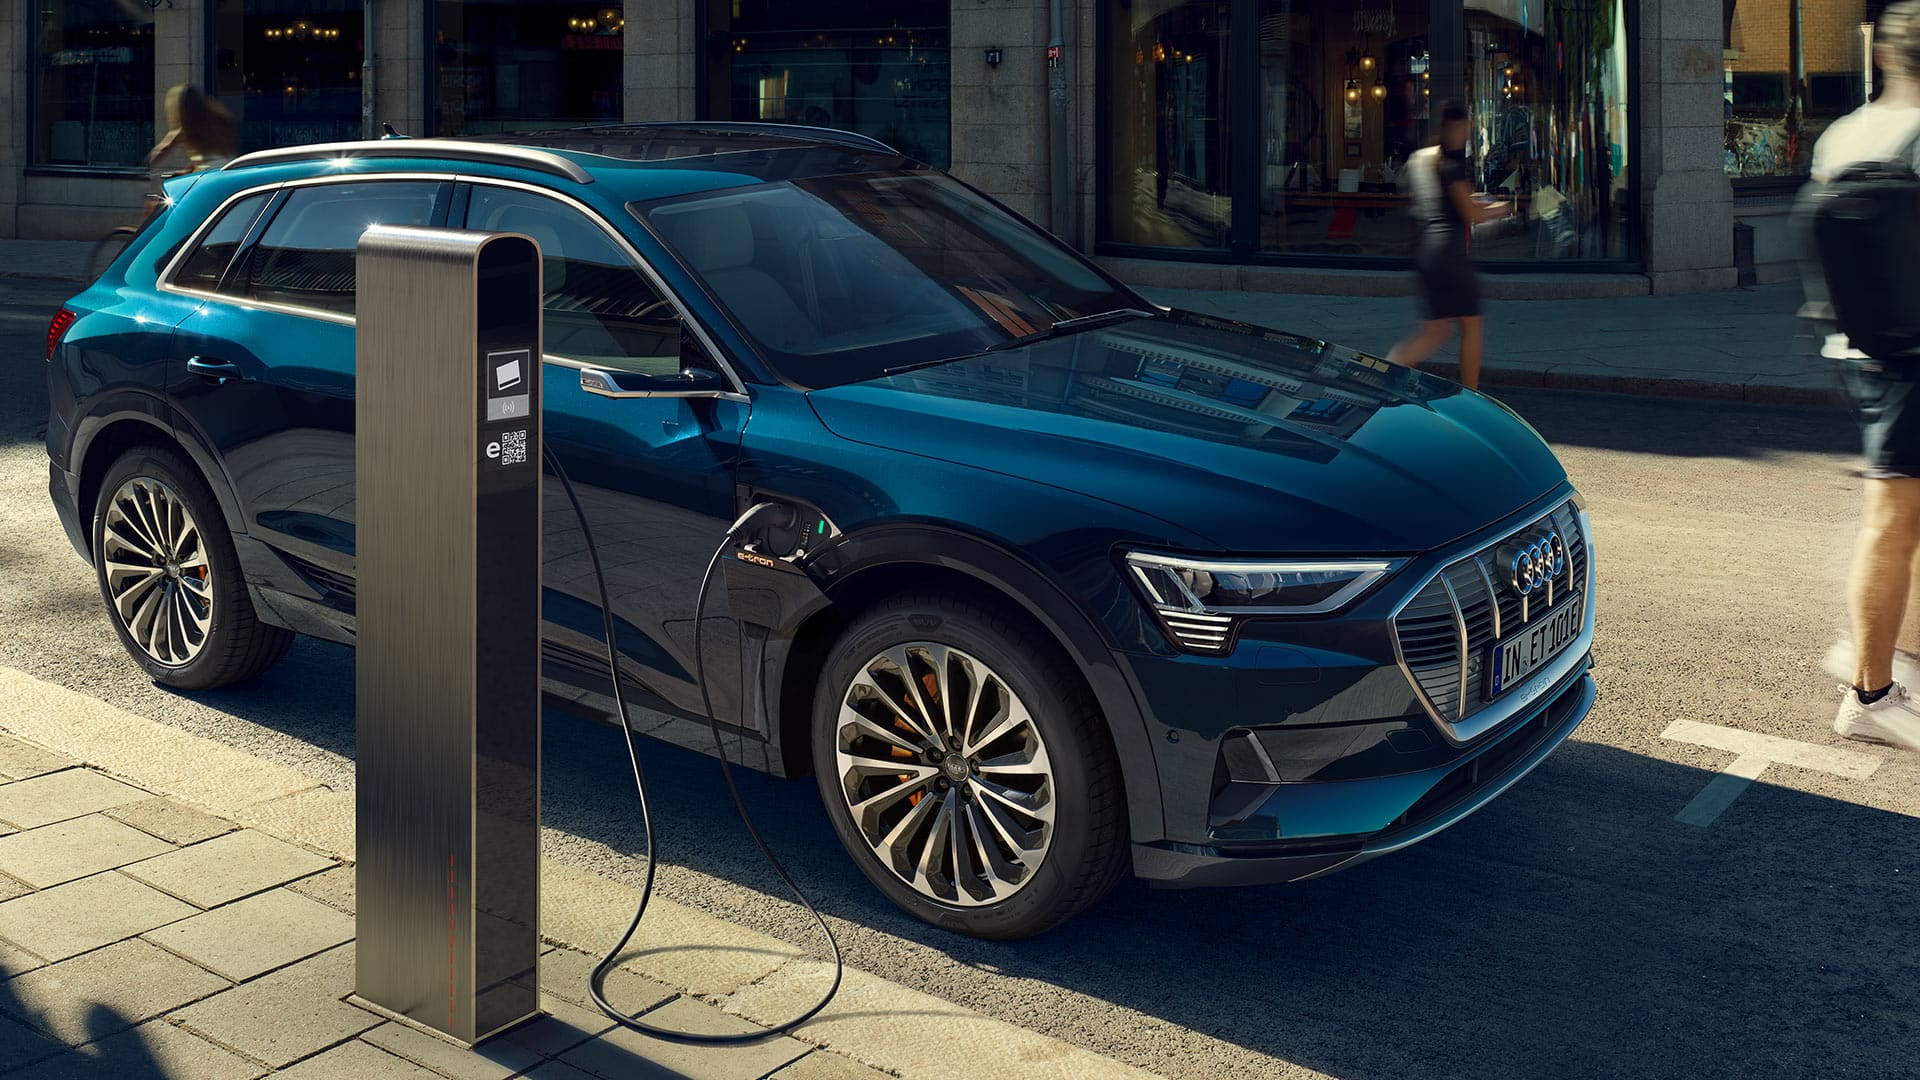 The Audi e-tron at a public charging station